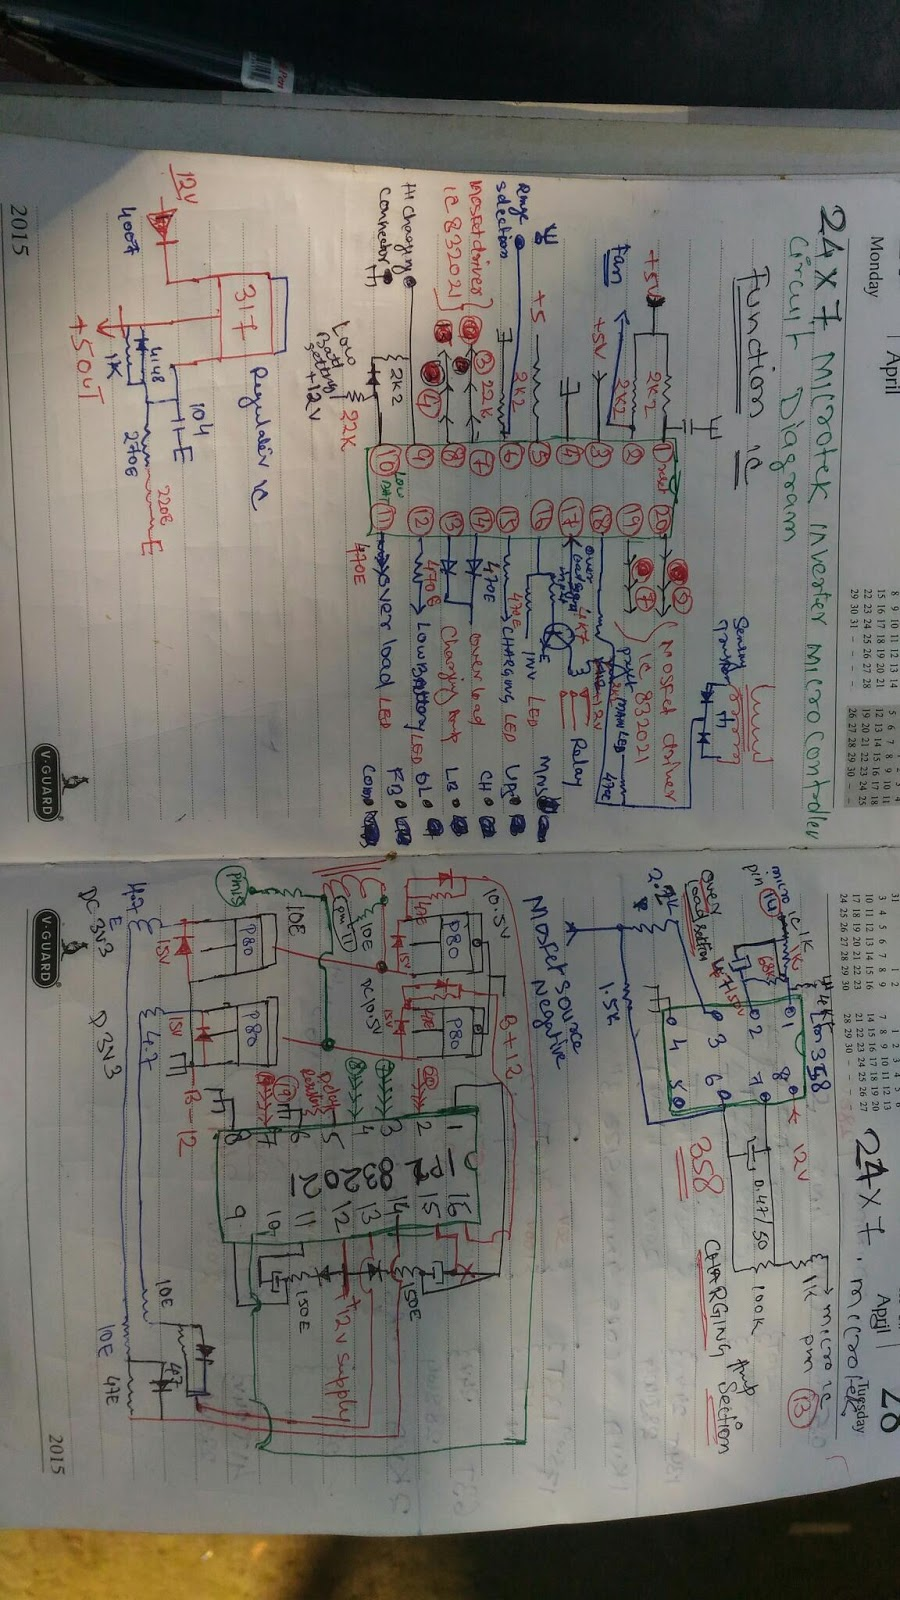 Nagaland genius electronics january 2018 microtek inverter 24x 7 circuit diagram asfbconference2016 Images